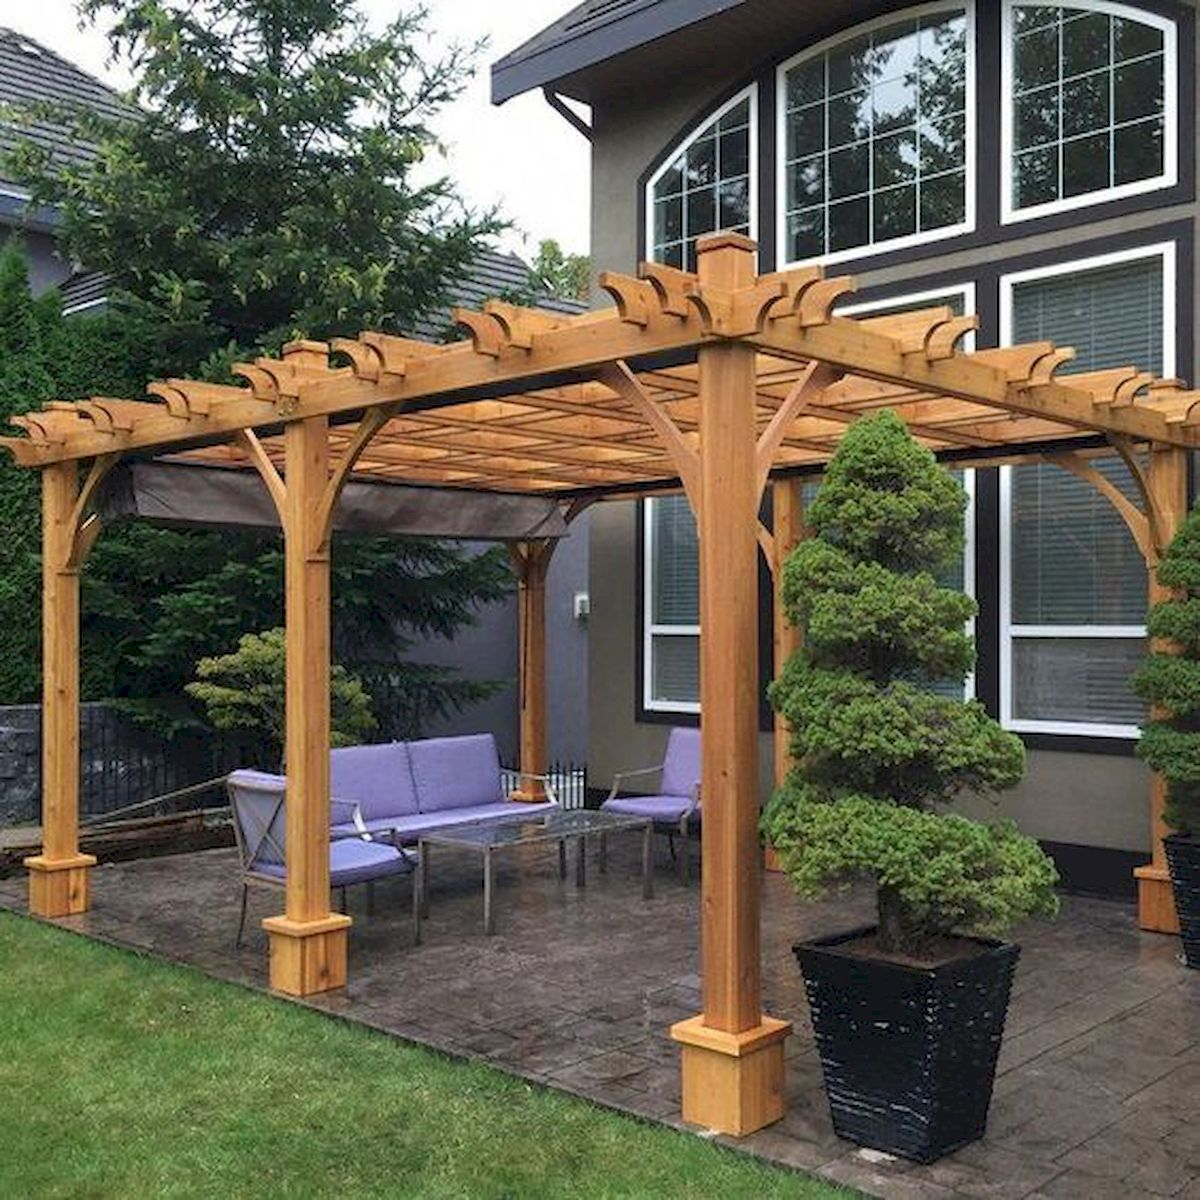 55 Fantastic Pergola Patio Design Ideas 25 Ideaboz